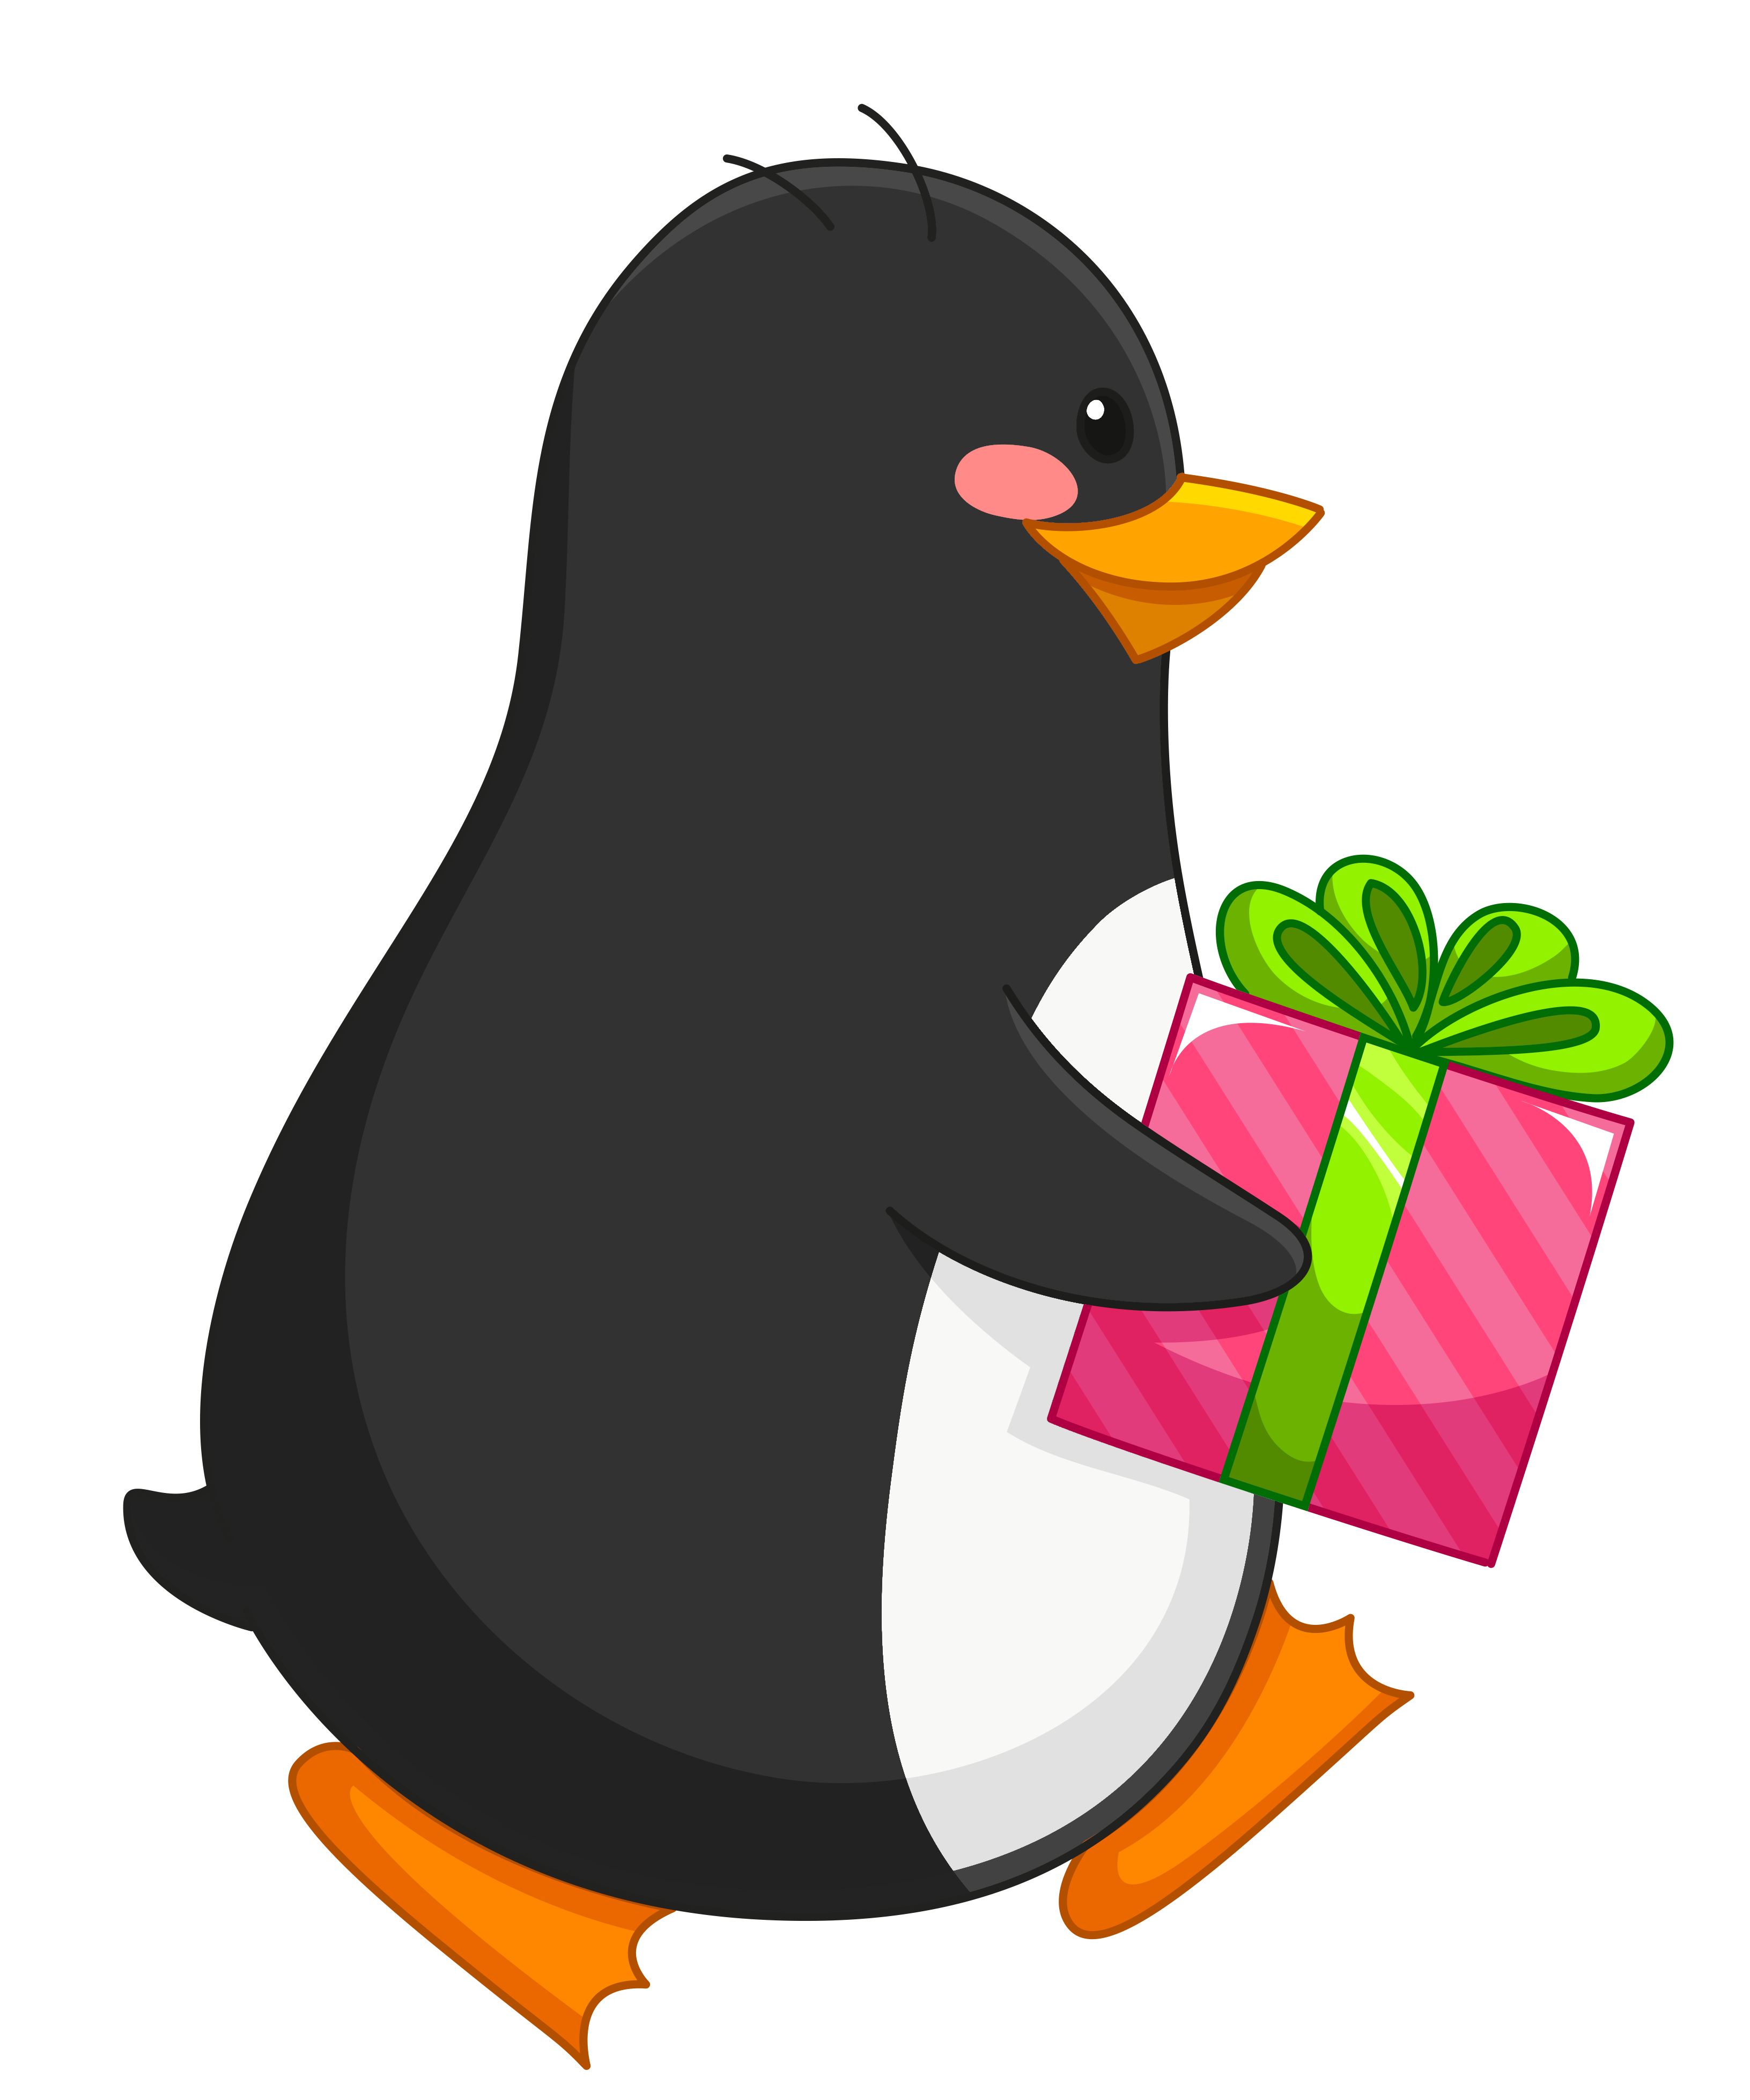 Transparent clipart penguin. With gift png gallery